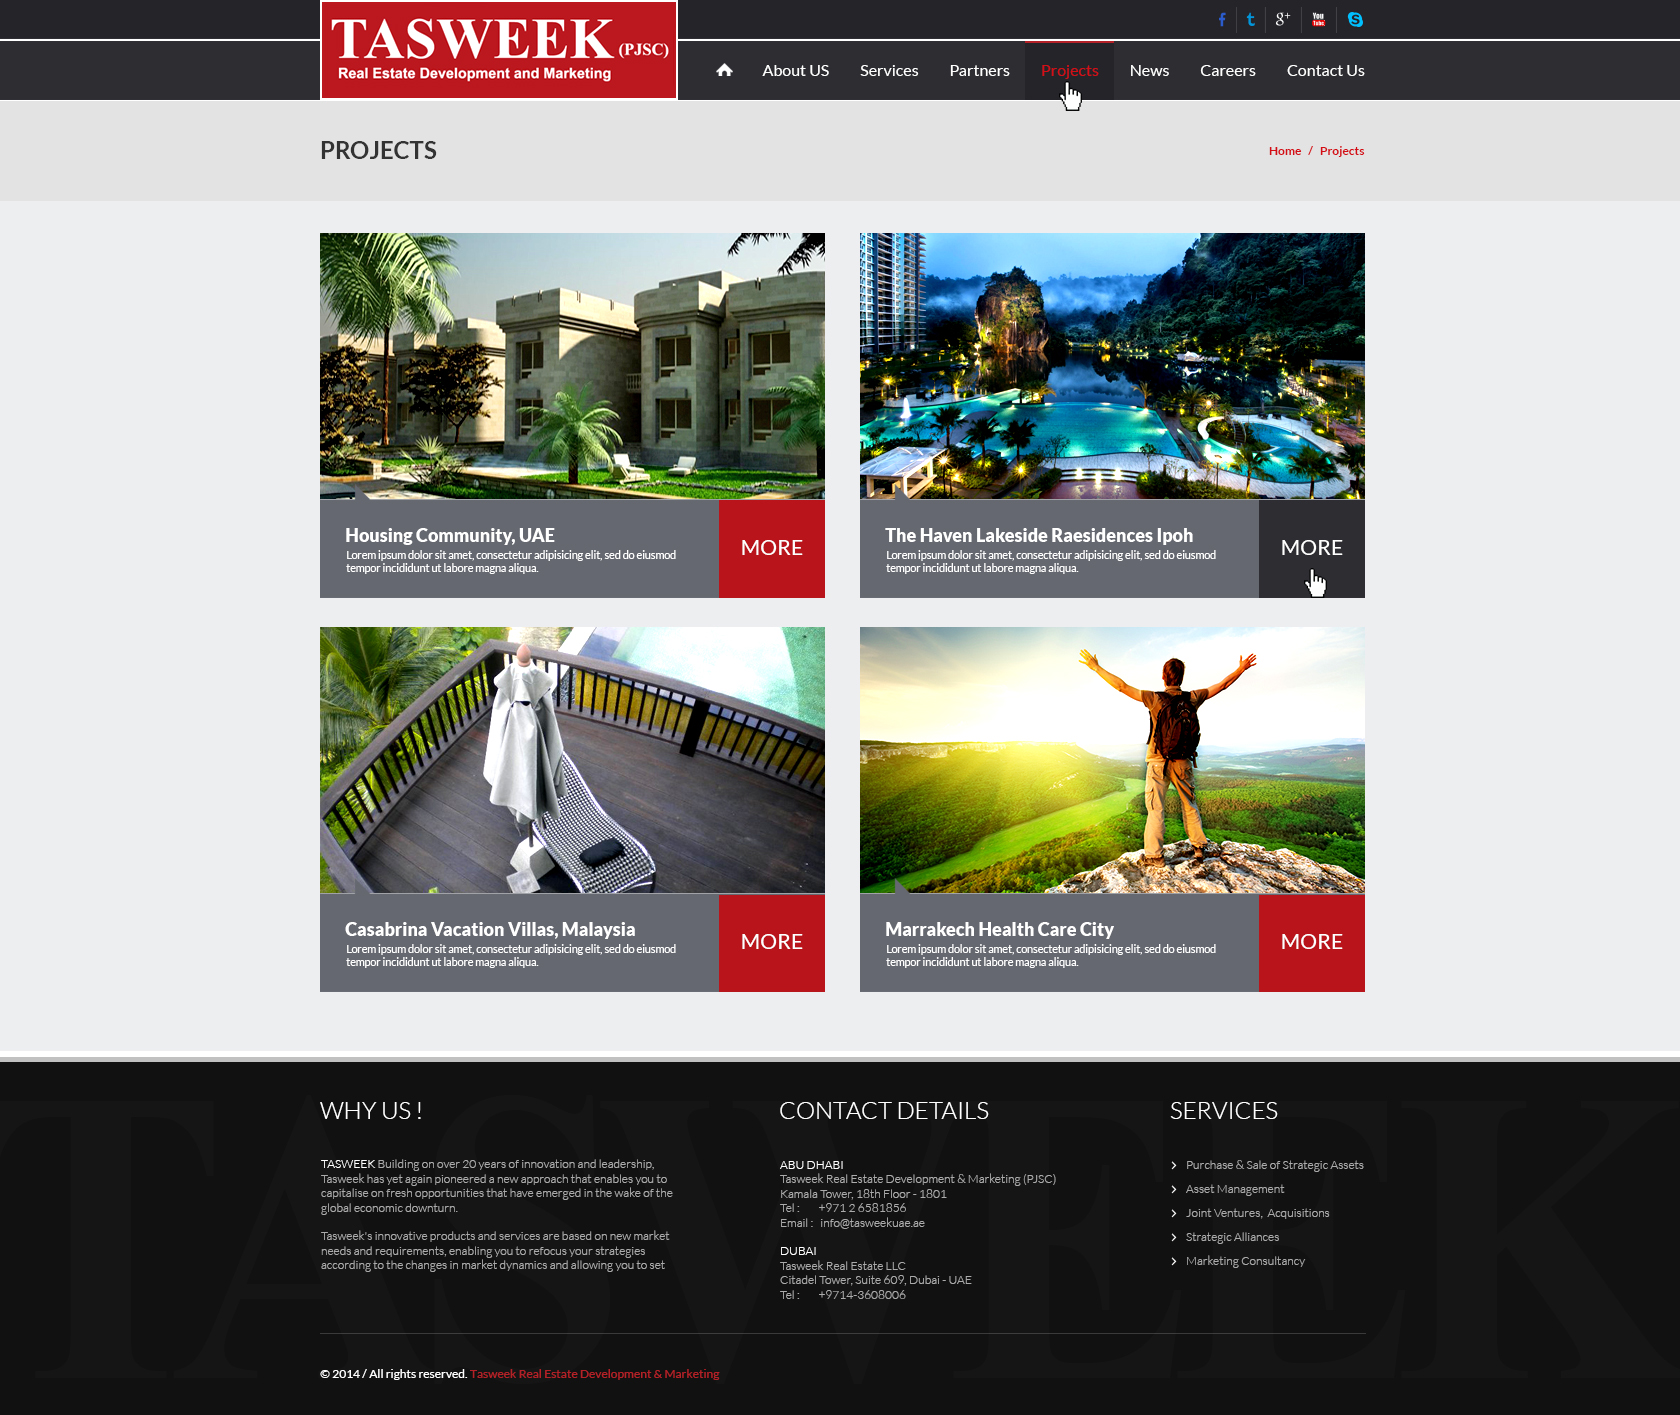 Tasweek - Projects